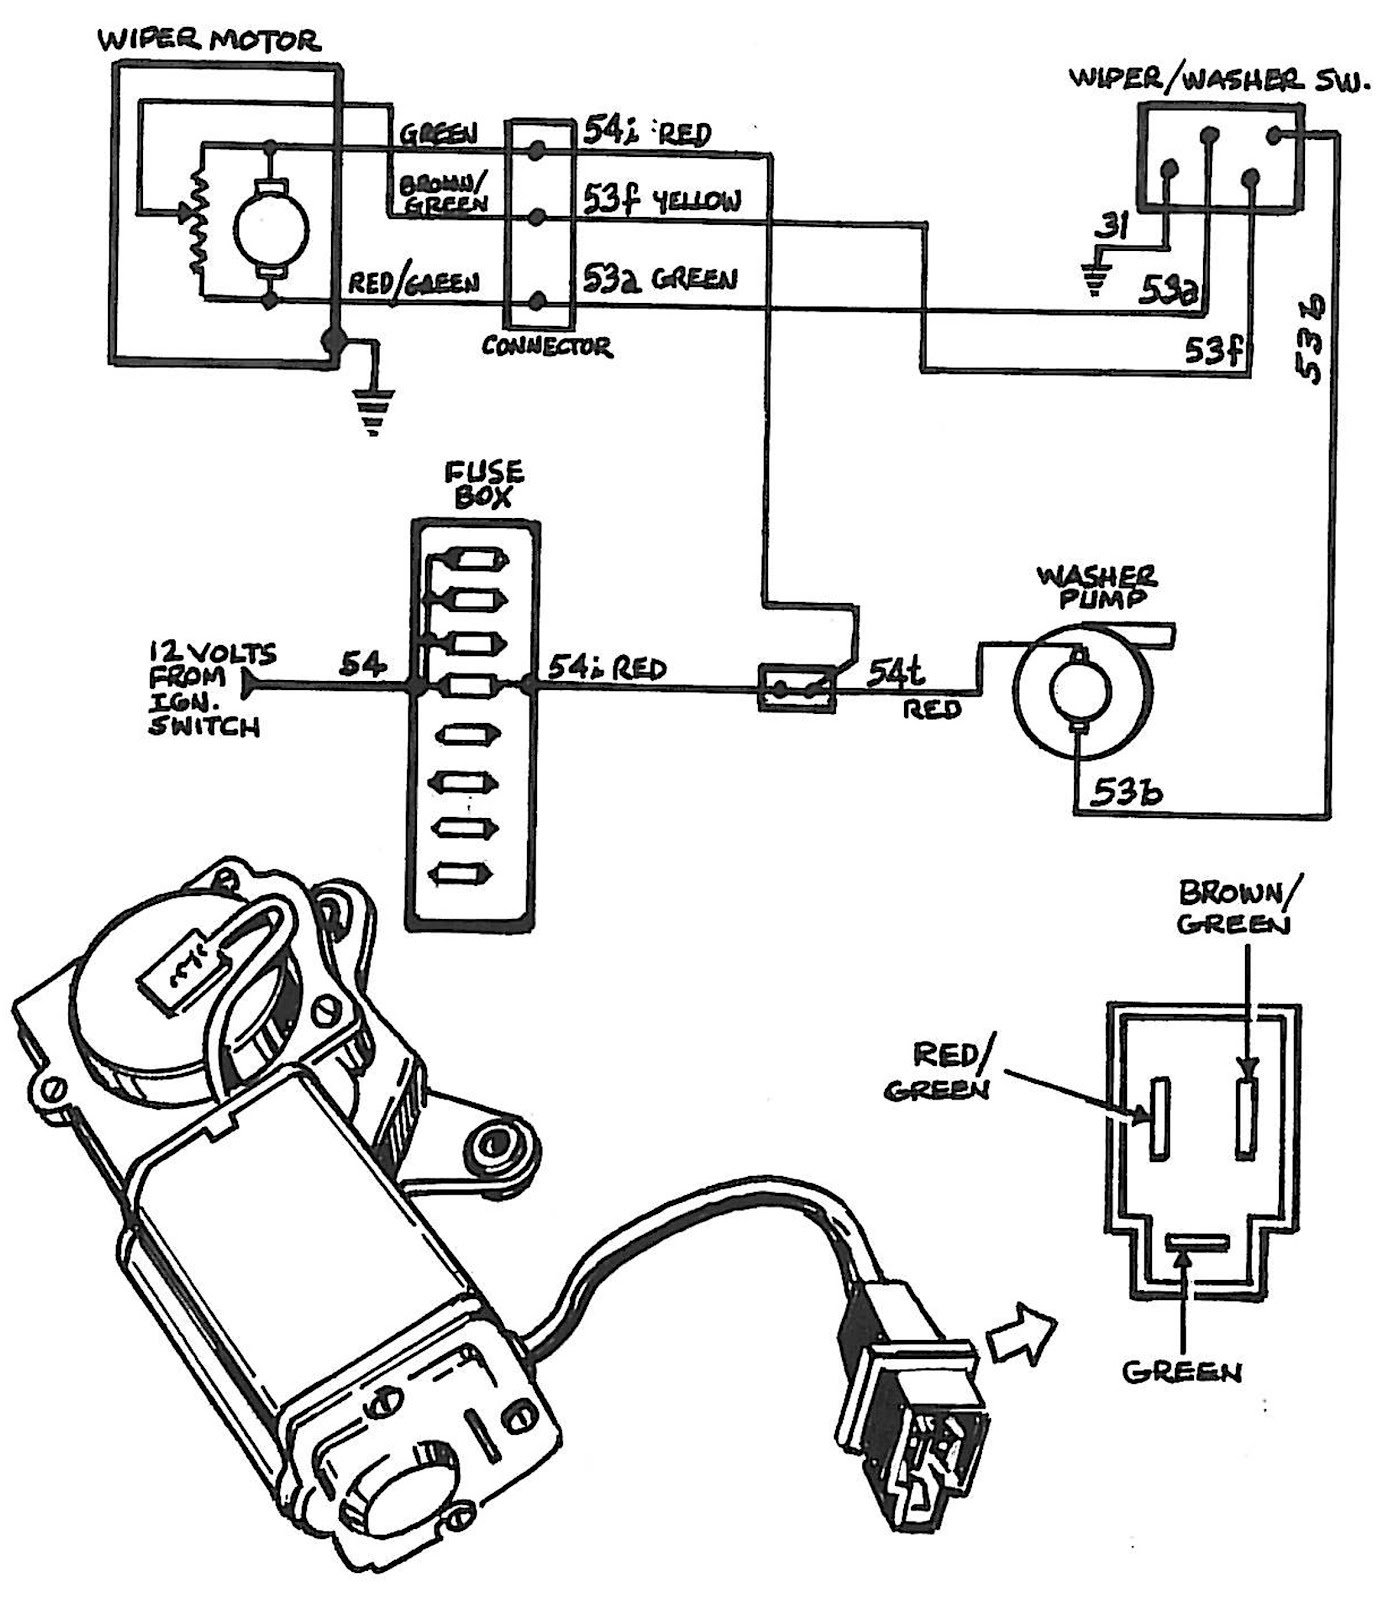 chevy windshield wiper motor wiring diagram CgTTPww trico wiper motor wiring diagram tj windshield wiper motor wires Chevrolet 350 Wiring Diagram at panicattacktreatment.co